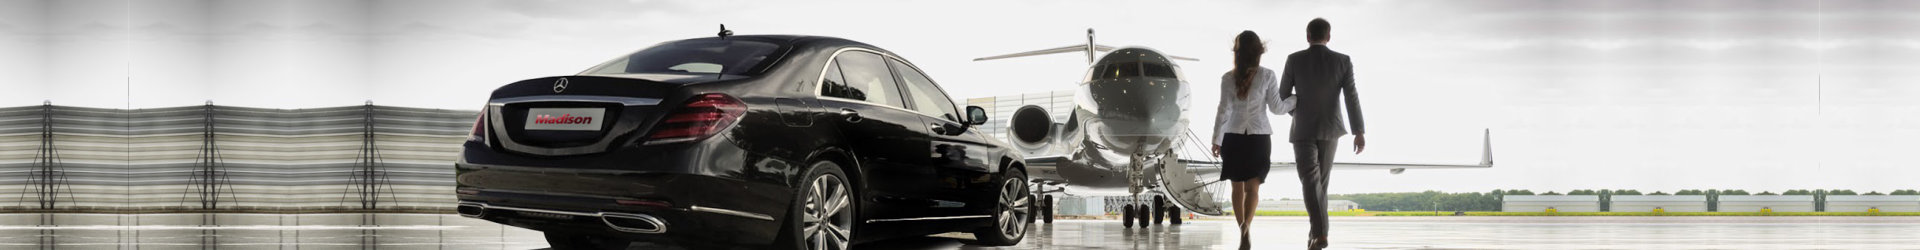 plane and a car with a couple